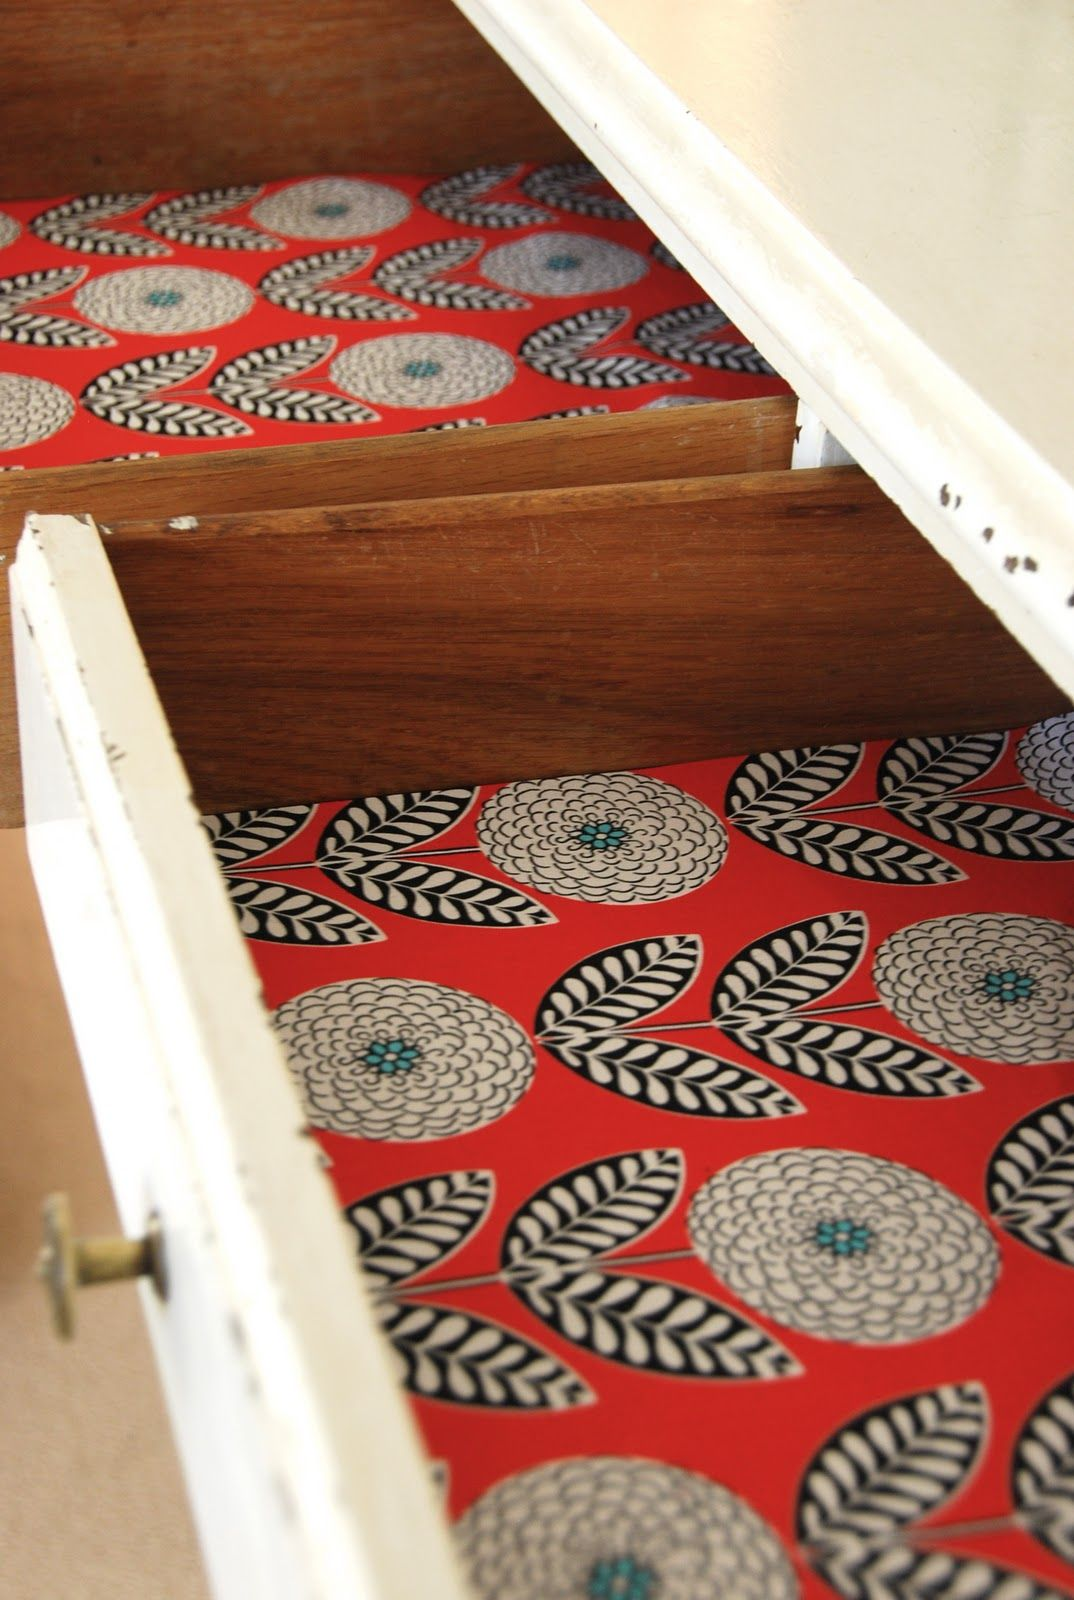 Drawers are generally for storage so no one ever expects the thoughtful pop of design that comes with sticking some wallpaper into the bottom of your